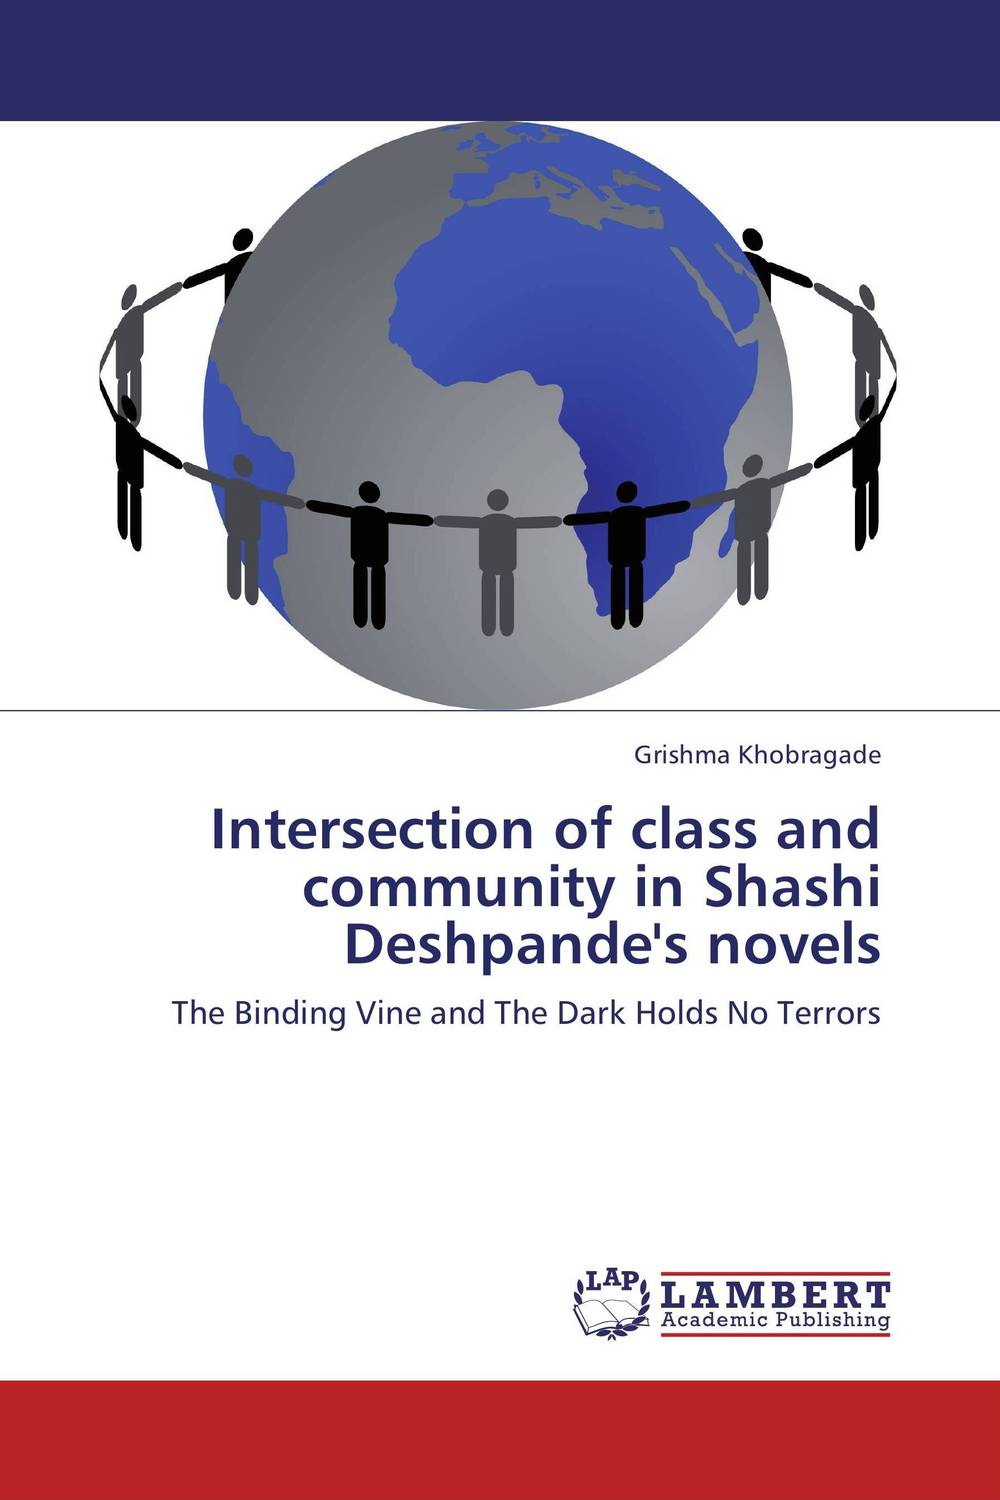 Intersection of class and community in Shashi Deshpande's novels study of global competitiveness of indian and chinese